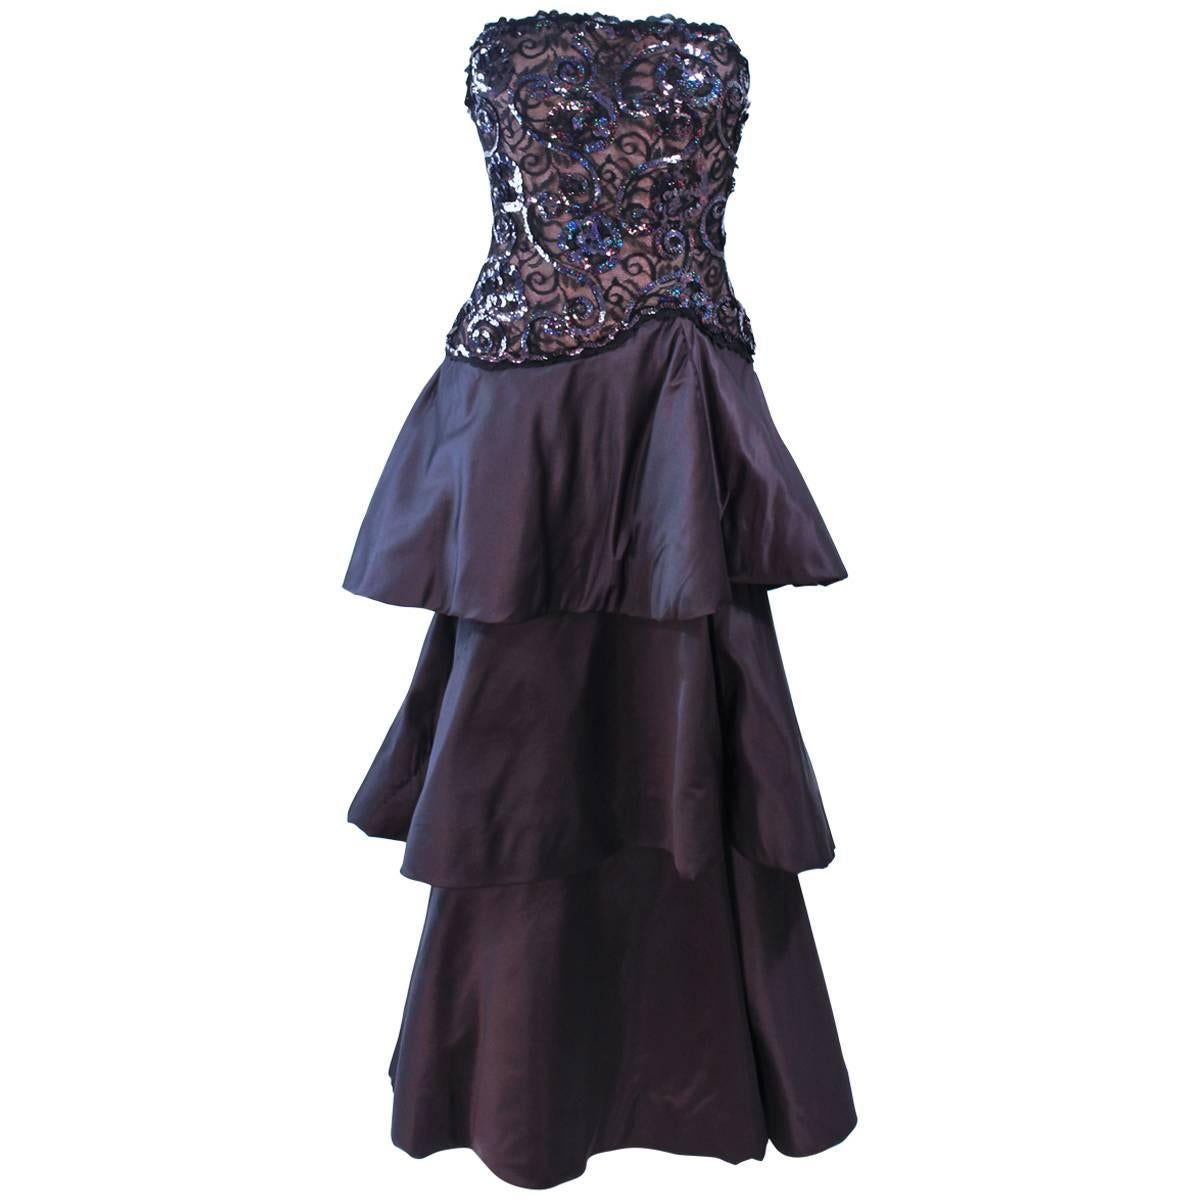 SCAASI 1980s Black & Gunmetal Lace Iridescent Sequin Tiered Gown Size  4 6